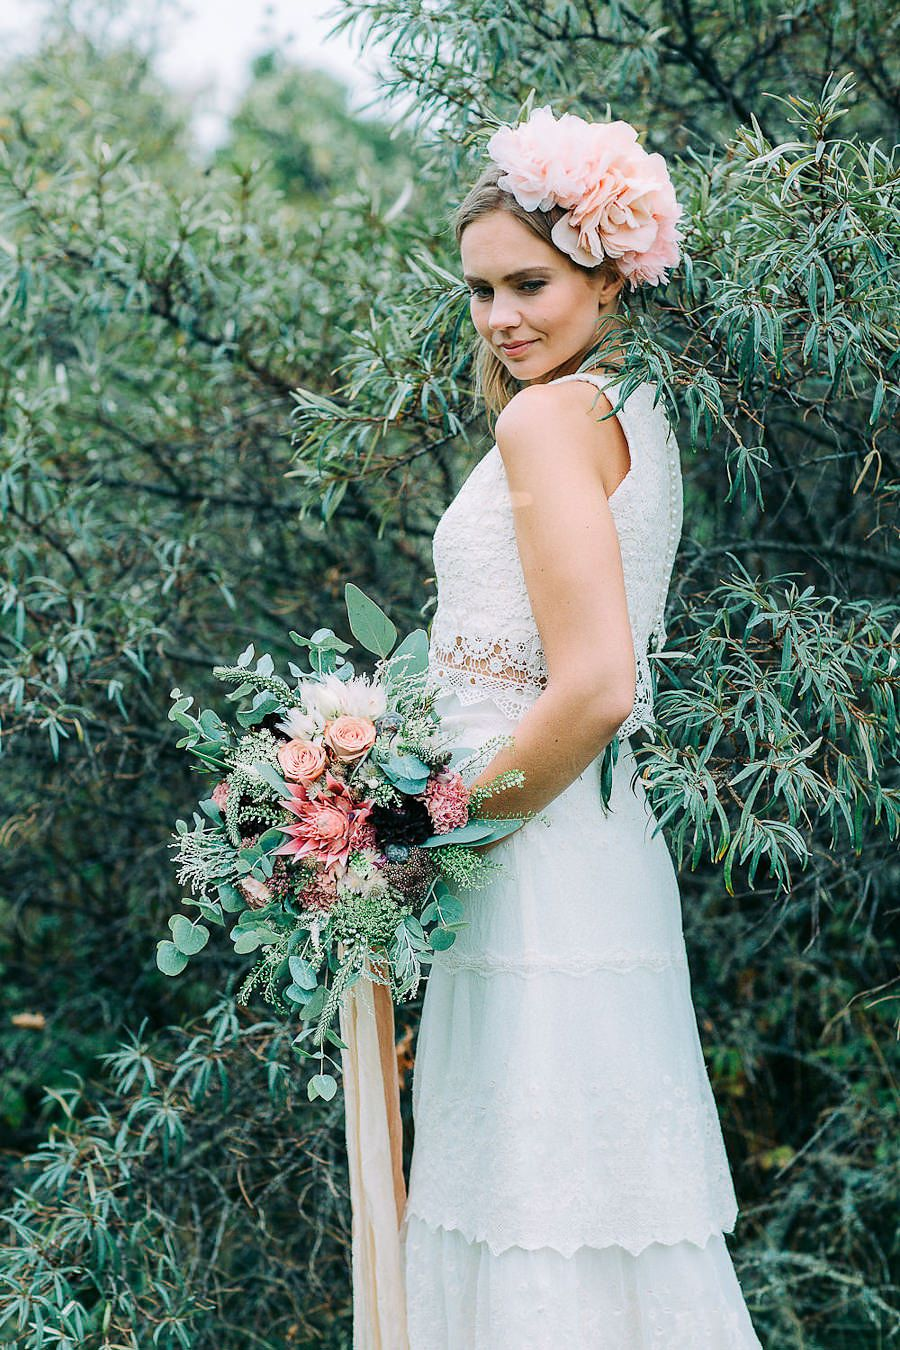 Wedding inspiration shoot in finland petra veikkola photography